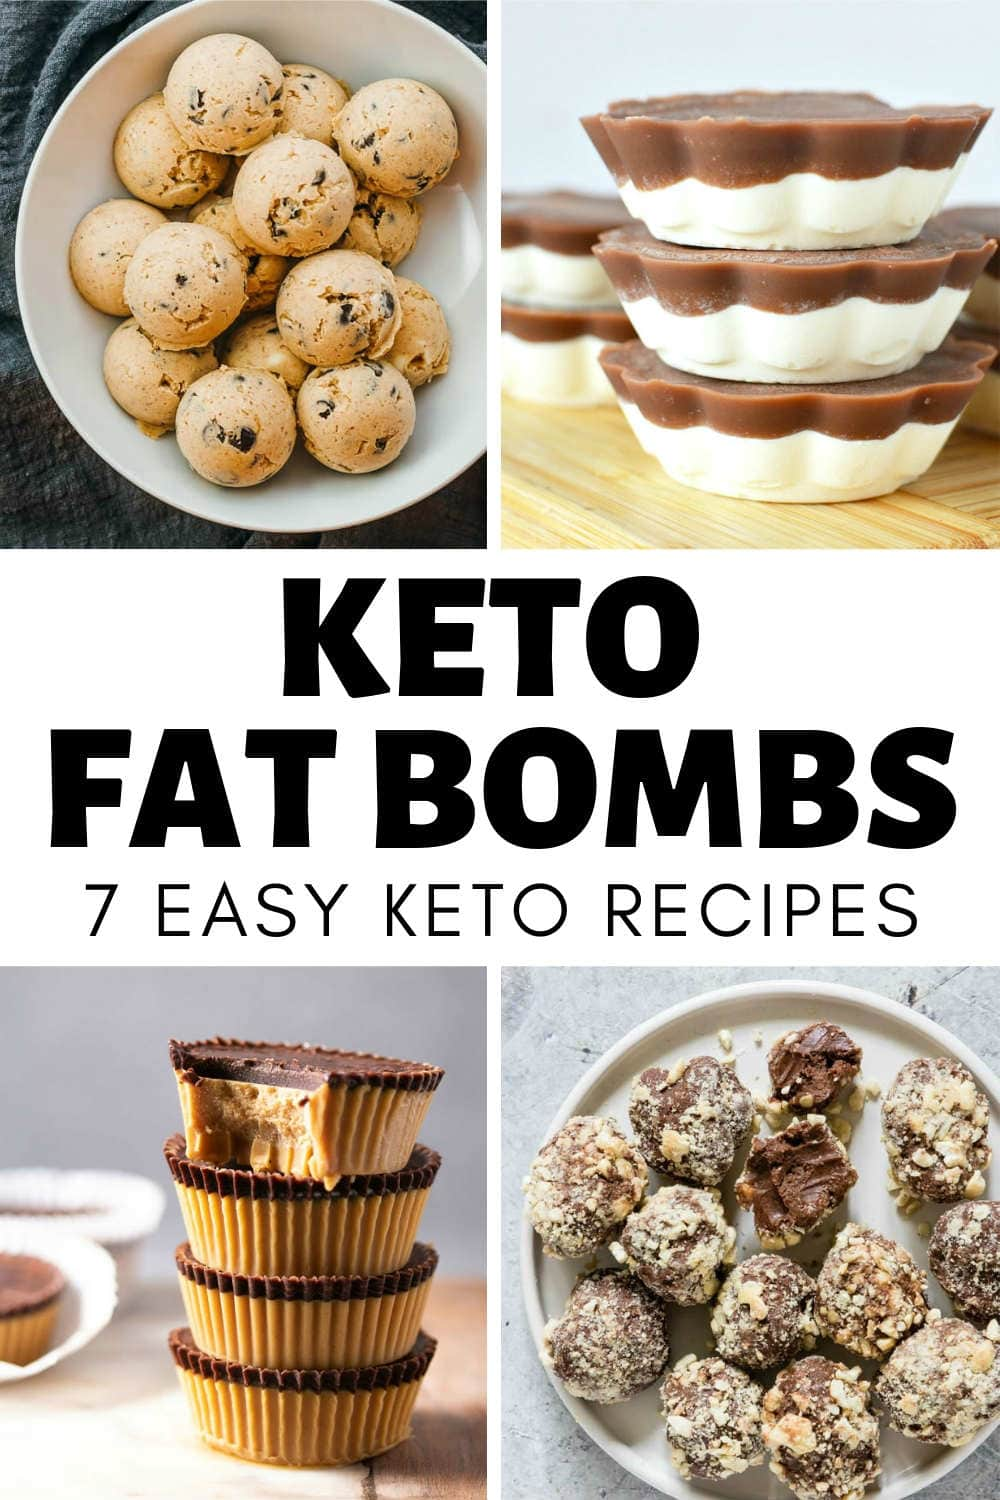 KETO FAT BOMBS 7 EASY RECIPES